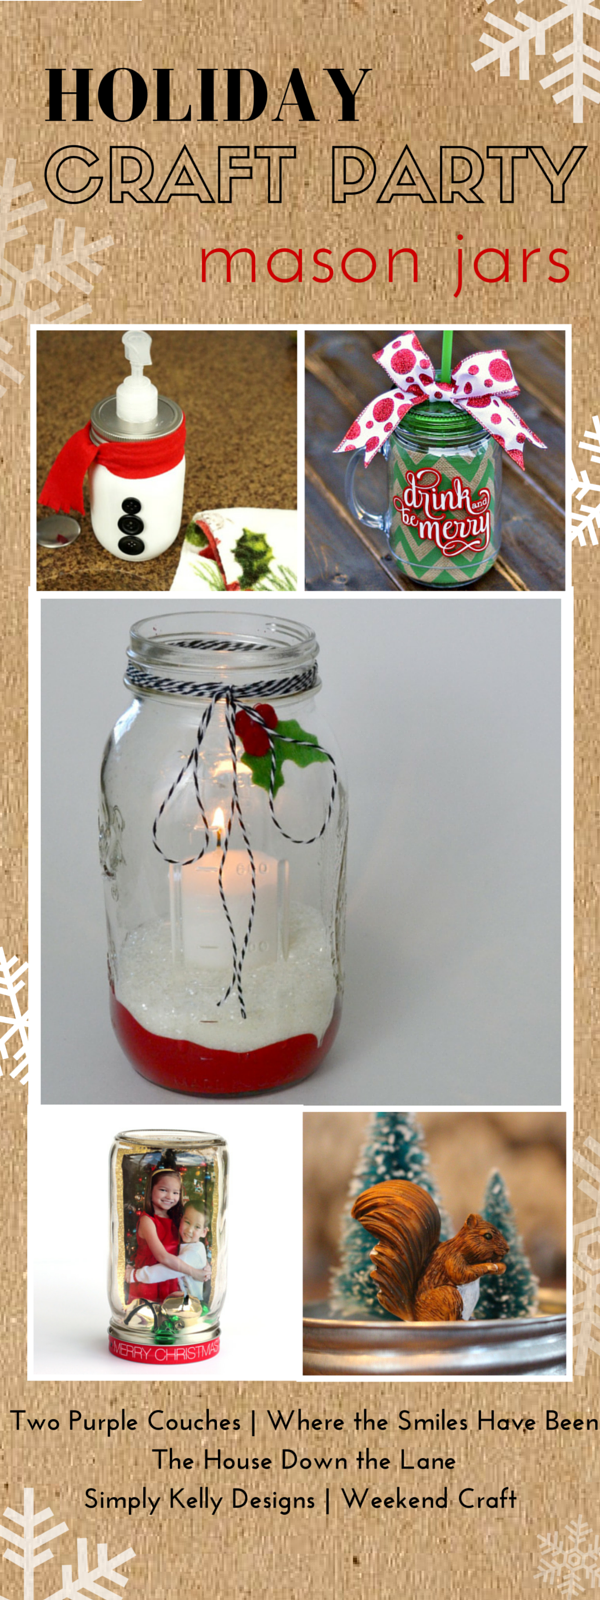 Holiday Craft Party Mason Jars